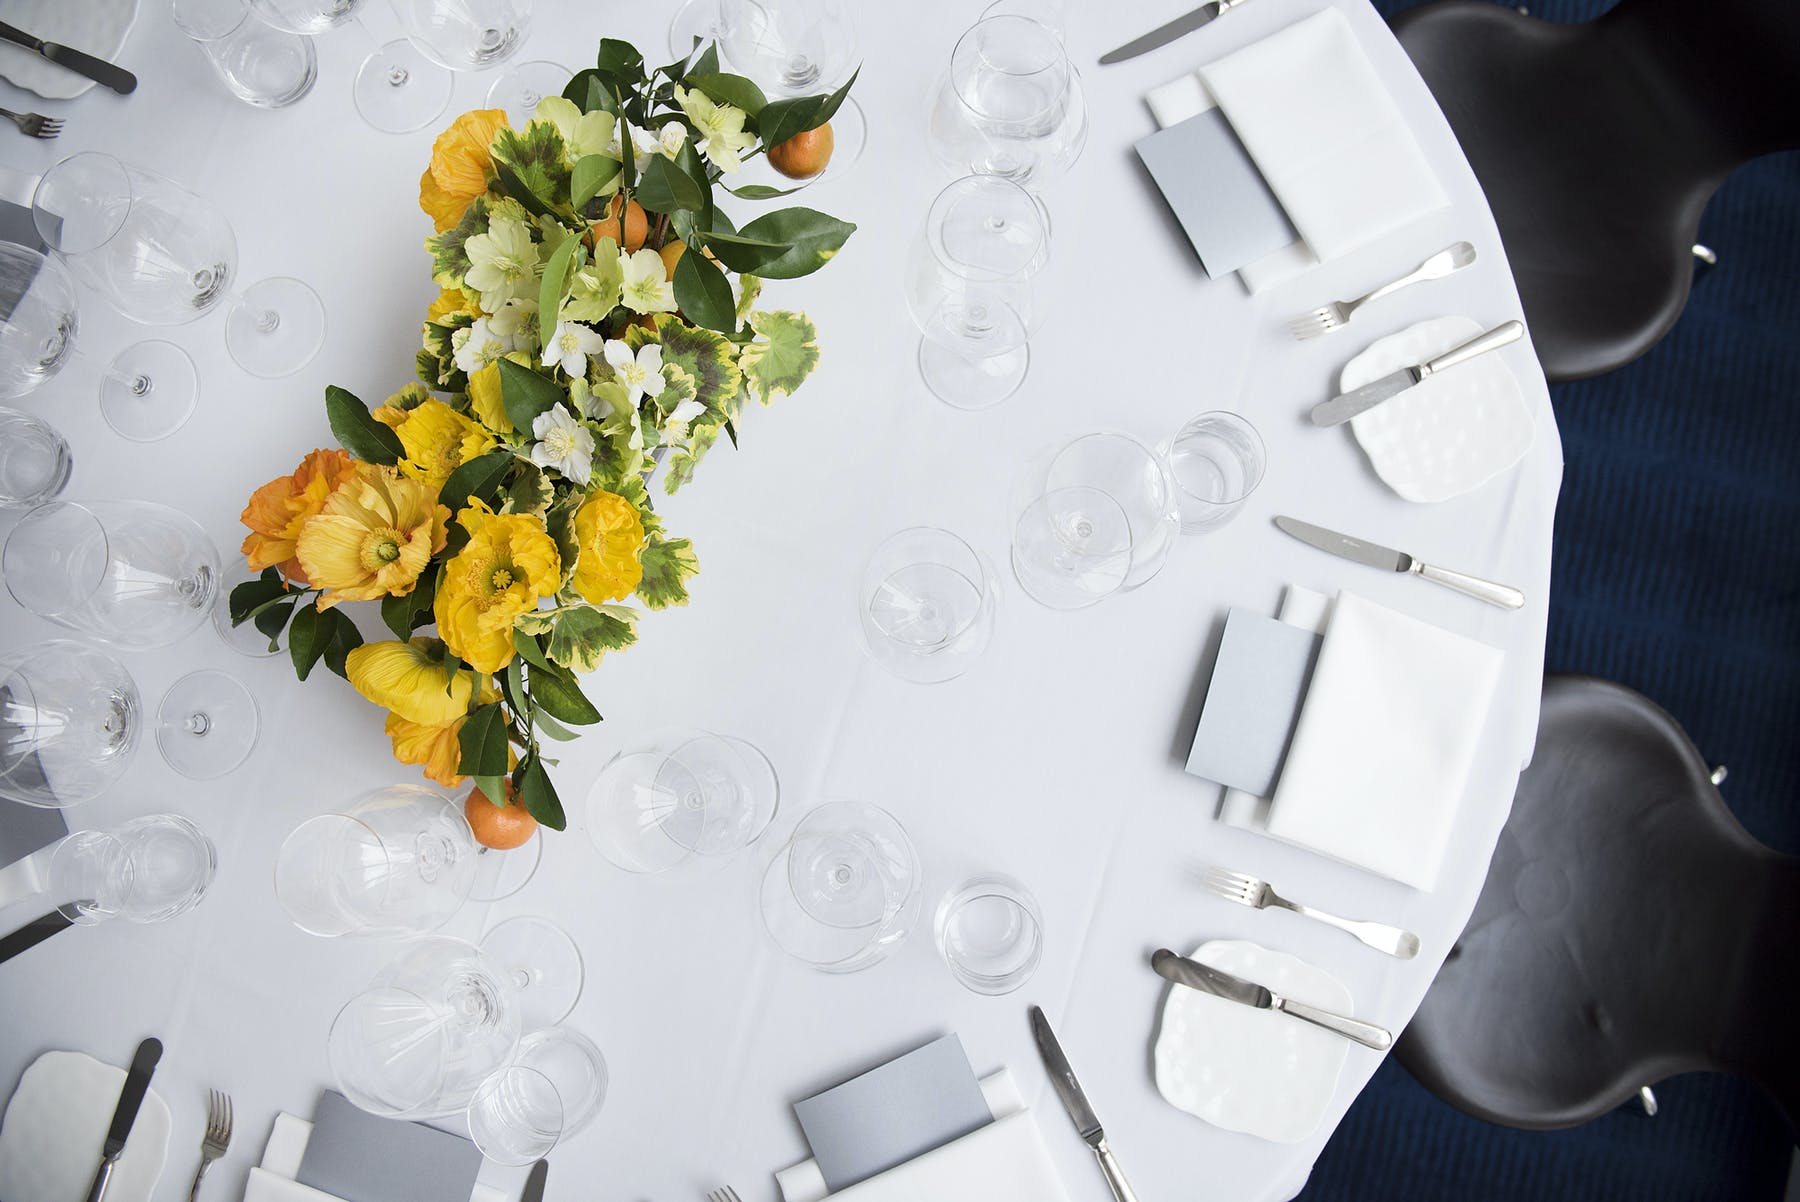 yellow flowers set as a vase on an event table